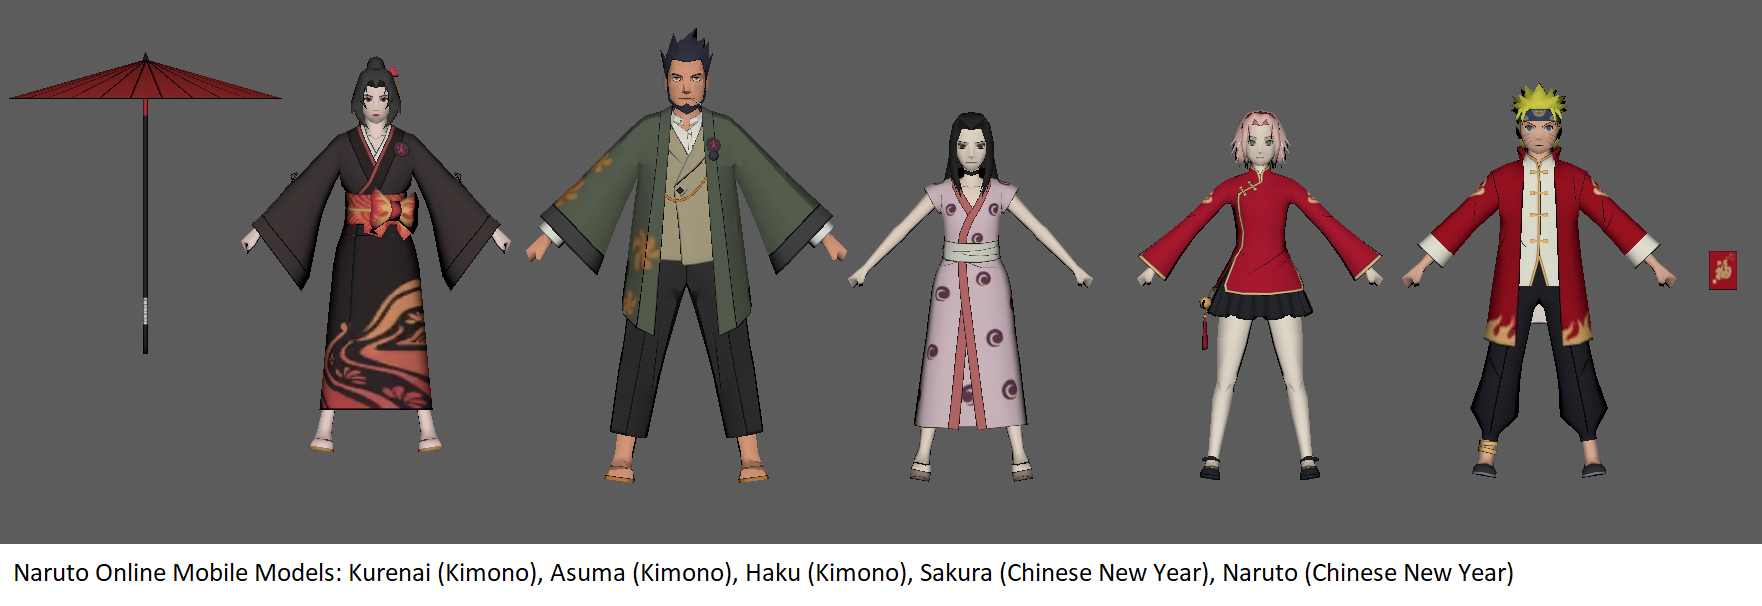 Naruto Online Mobile - Kimonos + Chinese New Year by